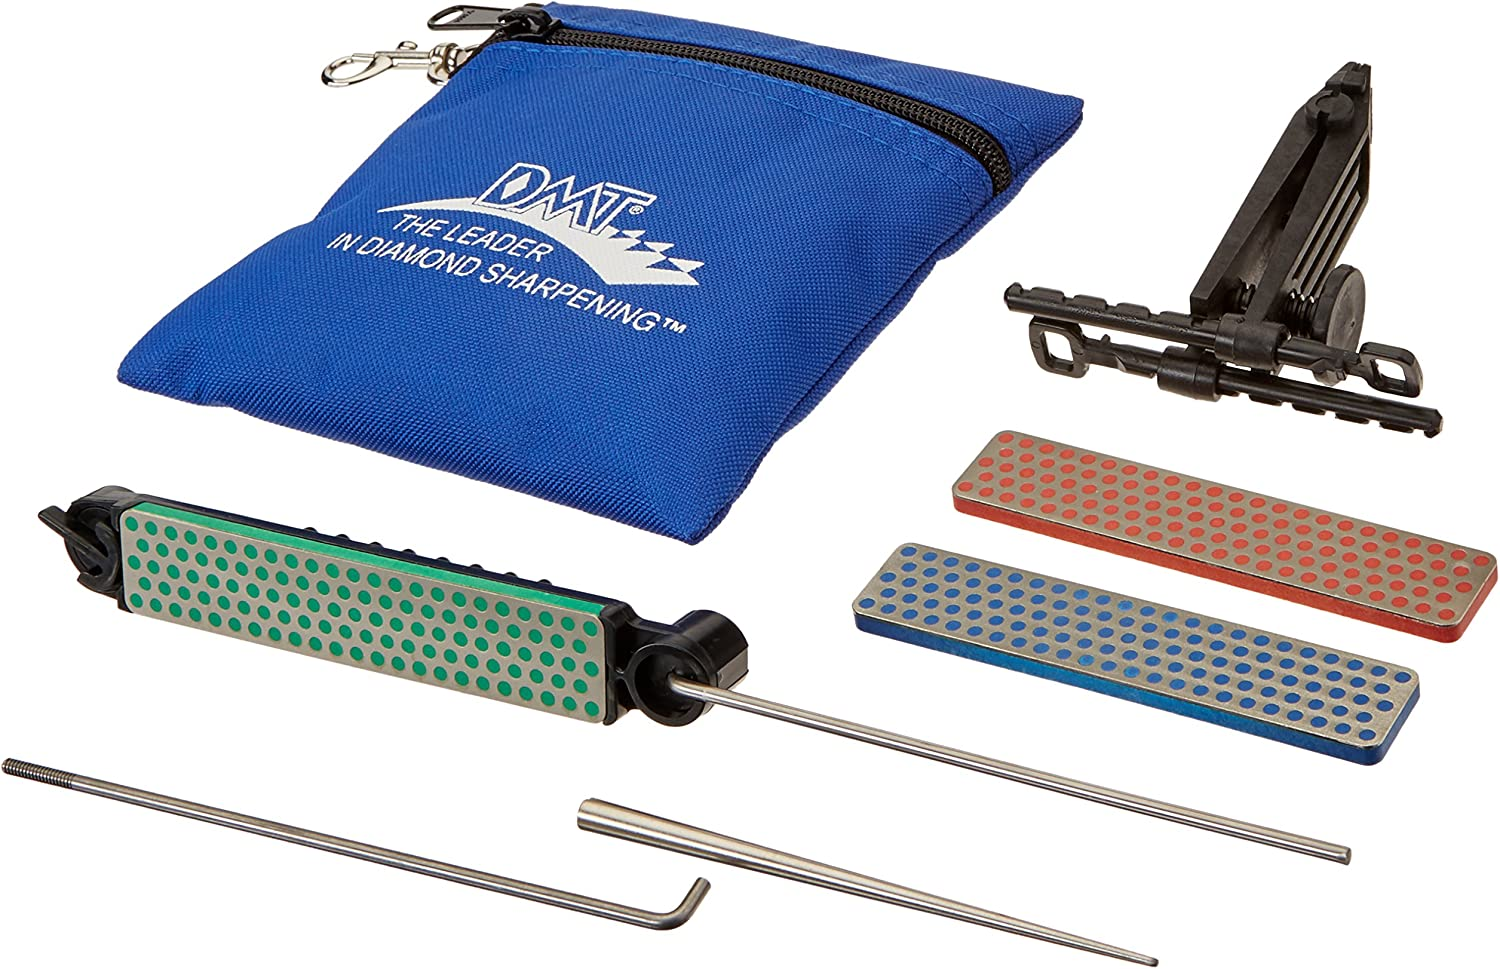 DMT ADELUXE Deluxe Aligner Kit 3 Diamond Whetstone//1 Serrated Sharpener